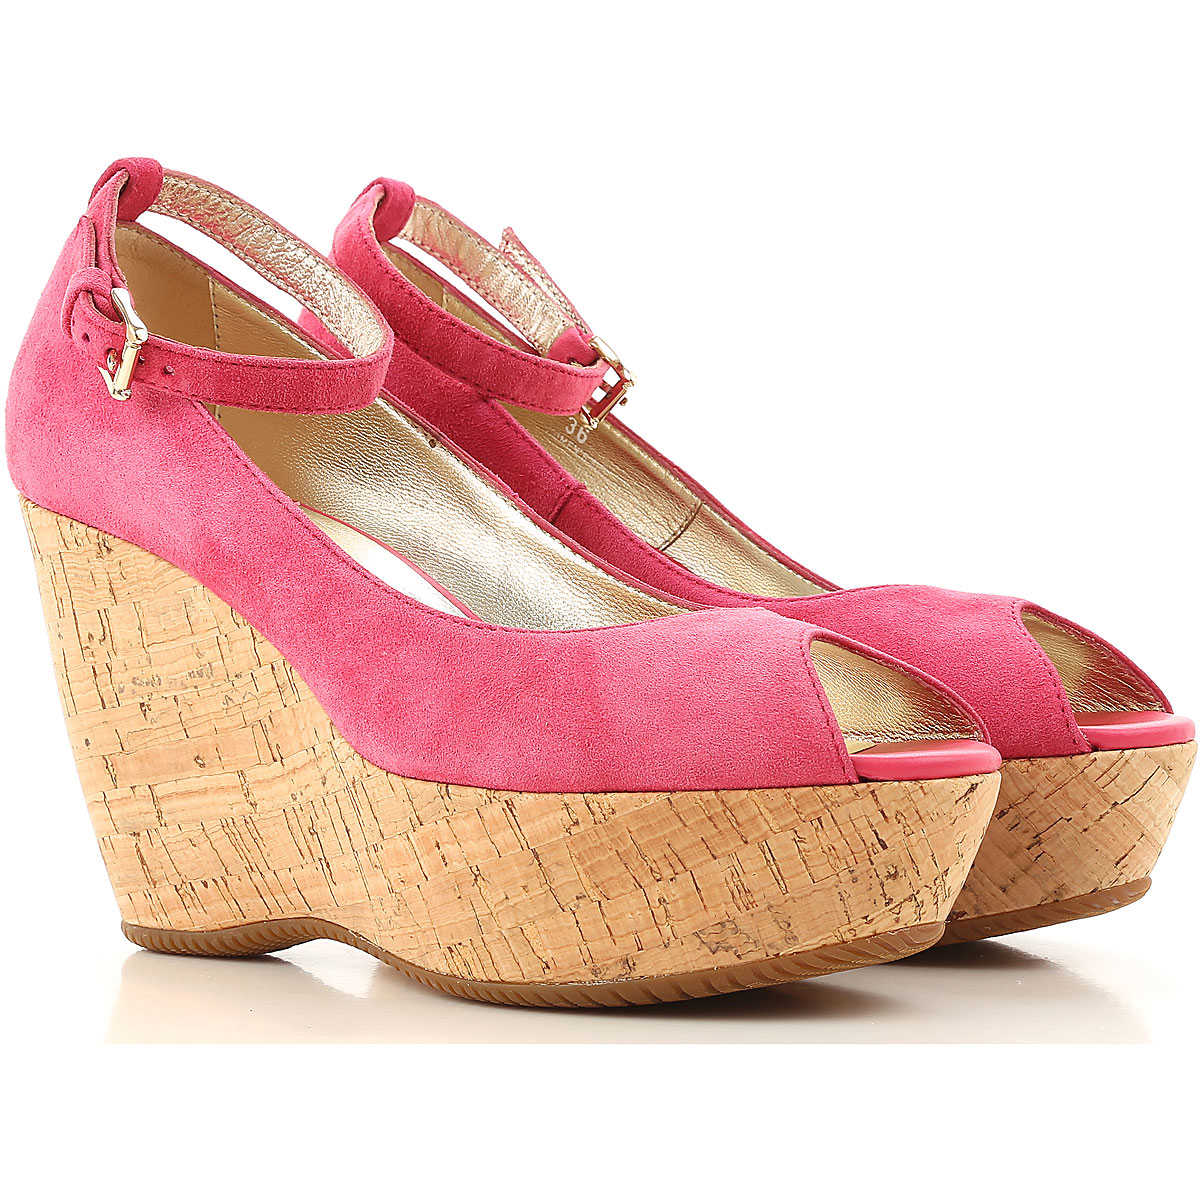 Hogan Wedges for Women On Sale in Outlet Fuchsia SE - GOOFASH